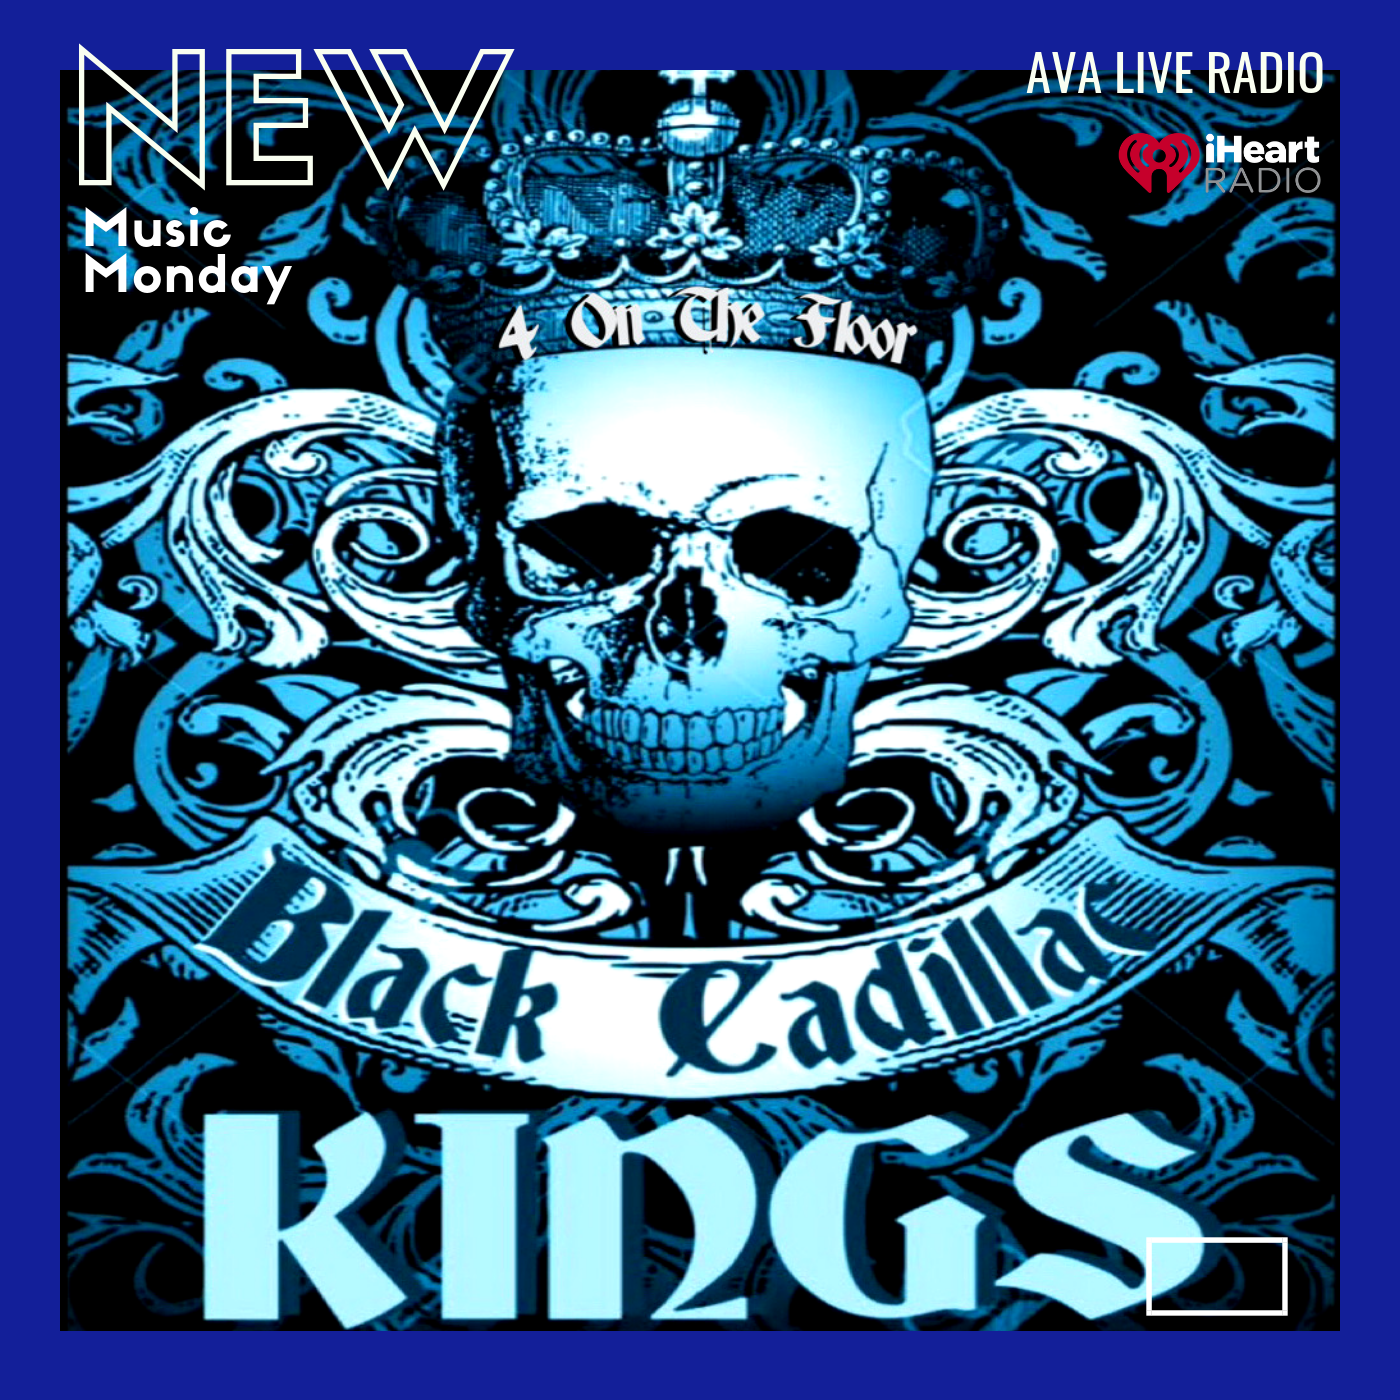 Black cadillac kings avaliveradio.png